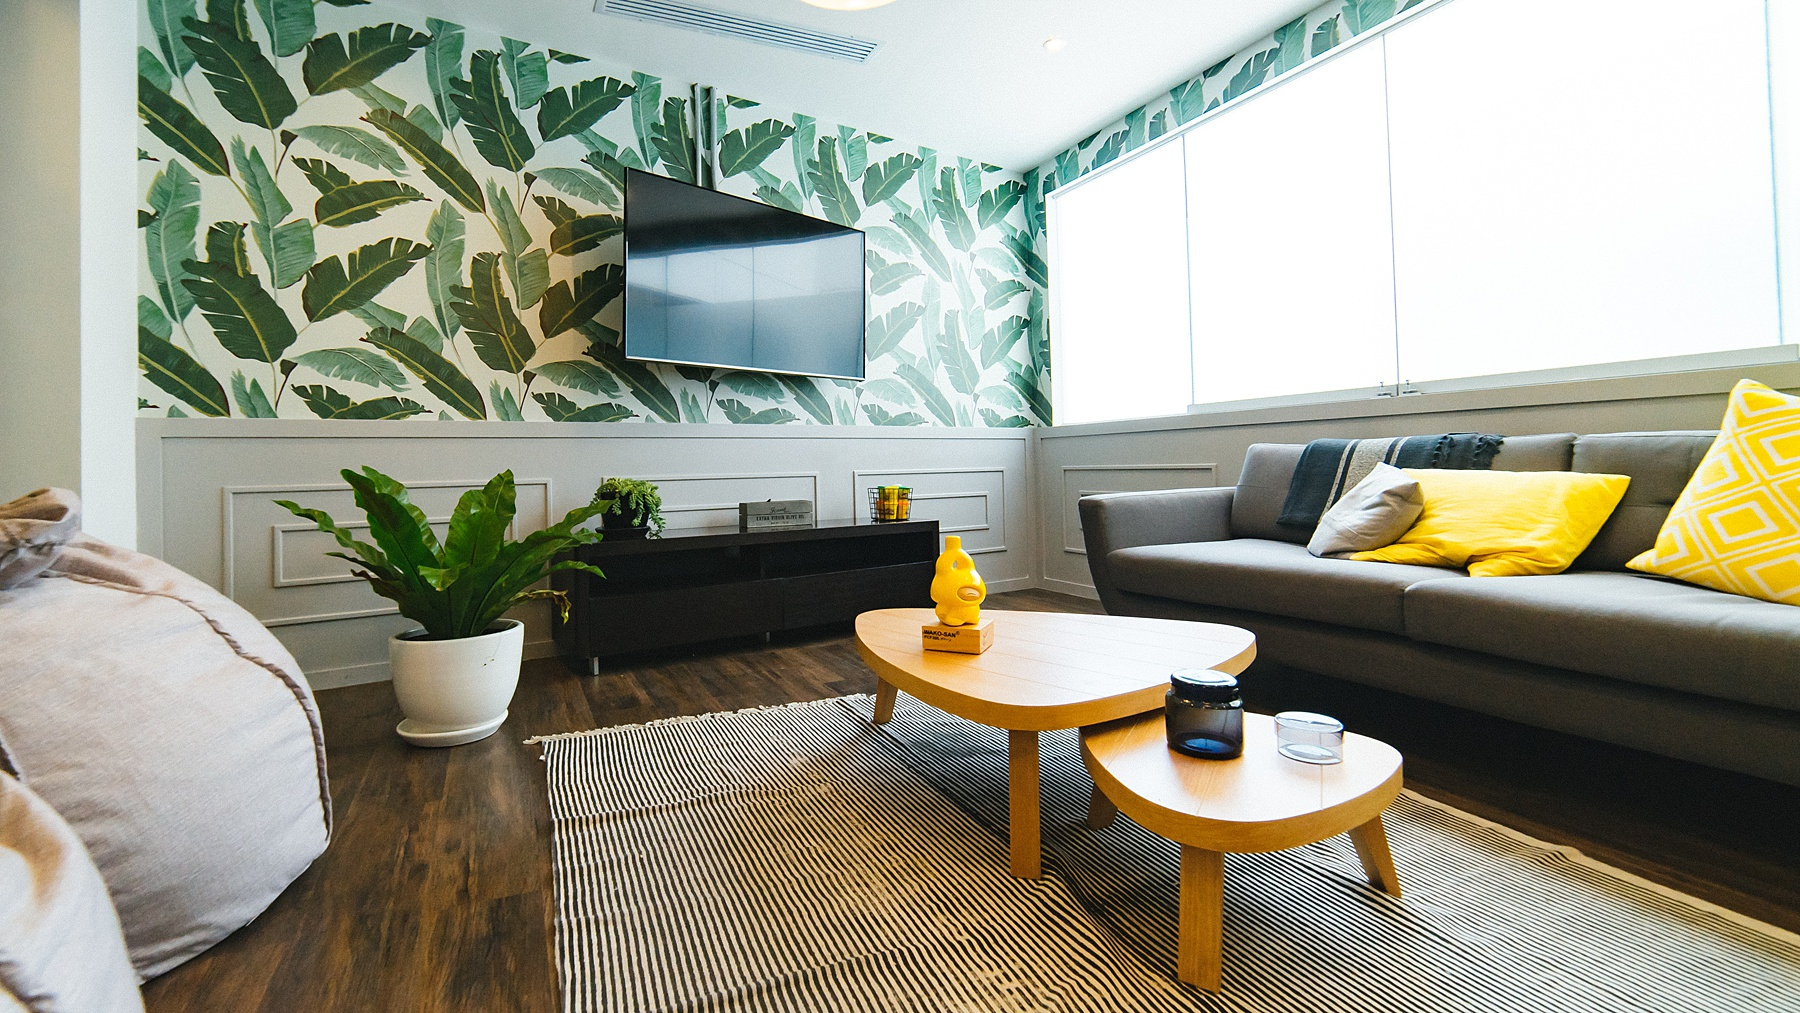 Living room with green leaf wallpaper, gray couch with yellow pillows for a pop of color-2021 Home Decor Trends